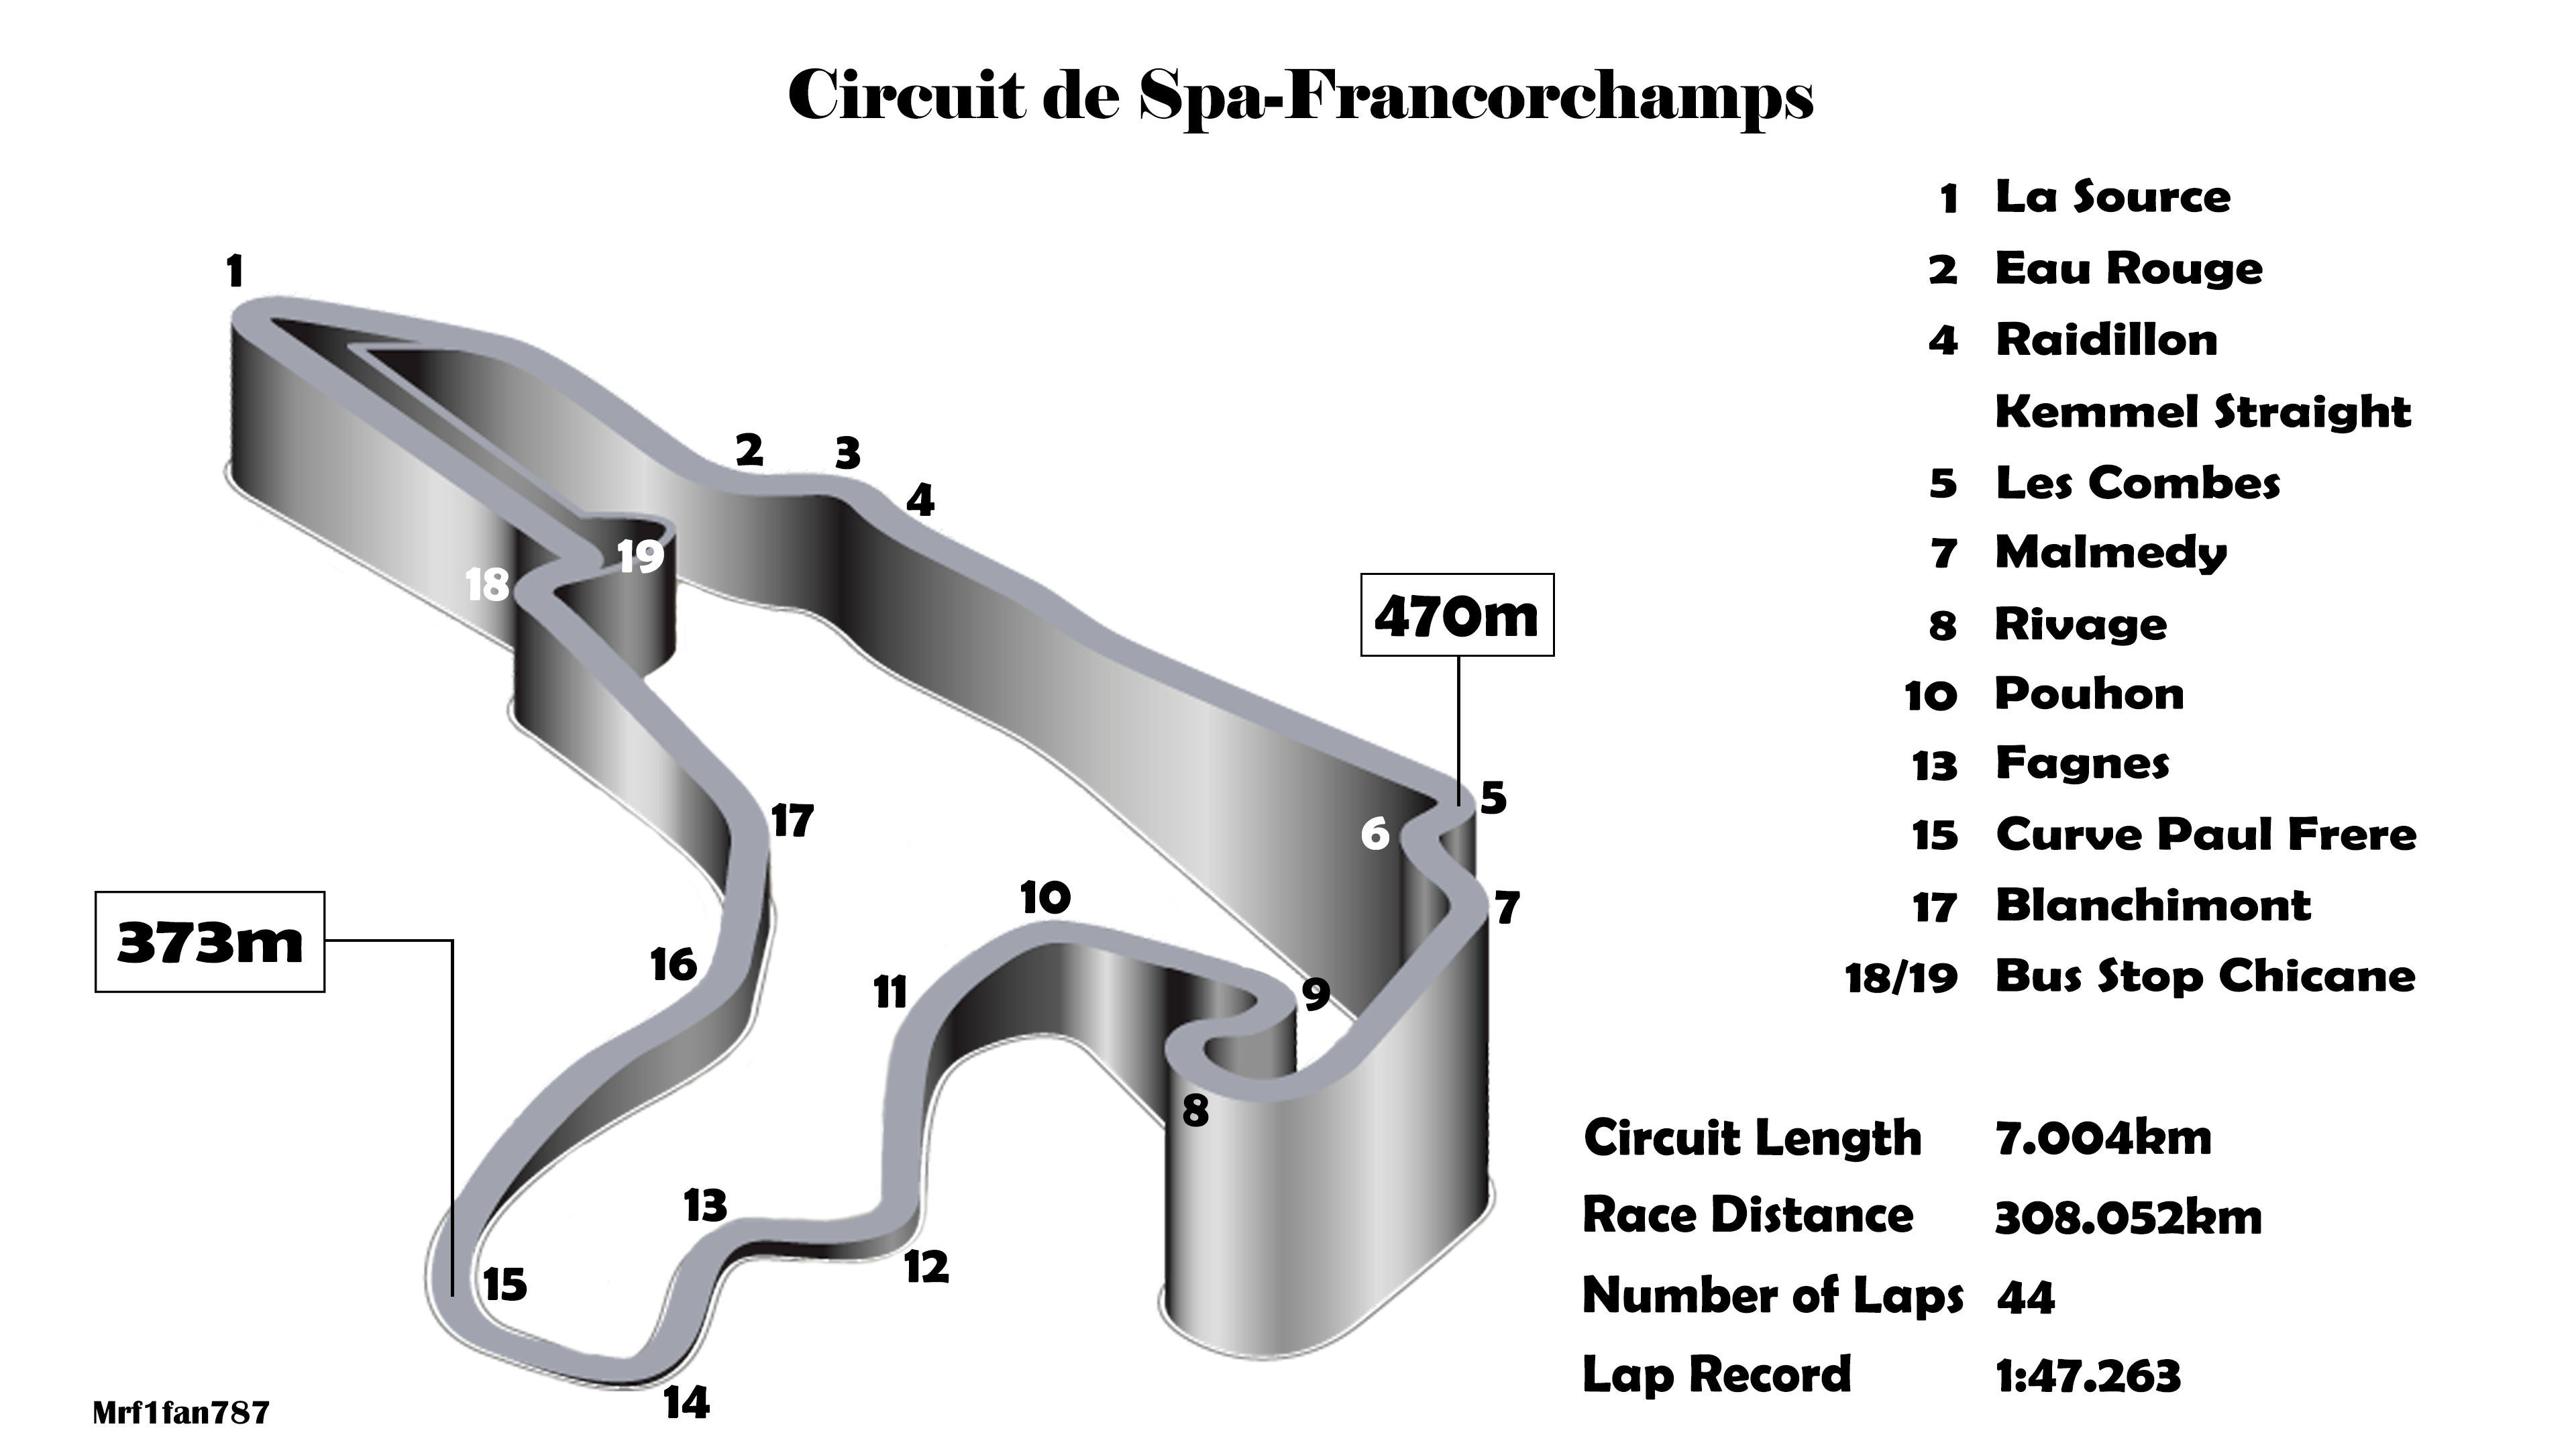 circuit de spa francorchamps racing pinterest circuits and f1. Black Bedroom Furniture Sets. Home Design Ideas